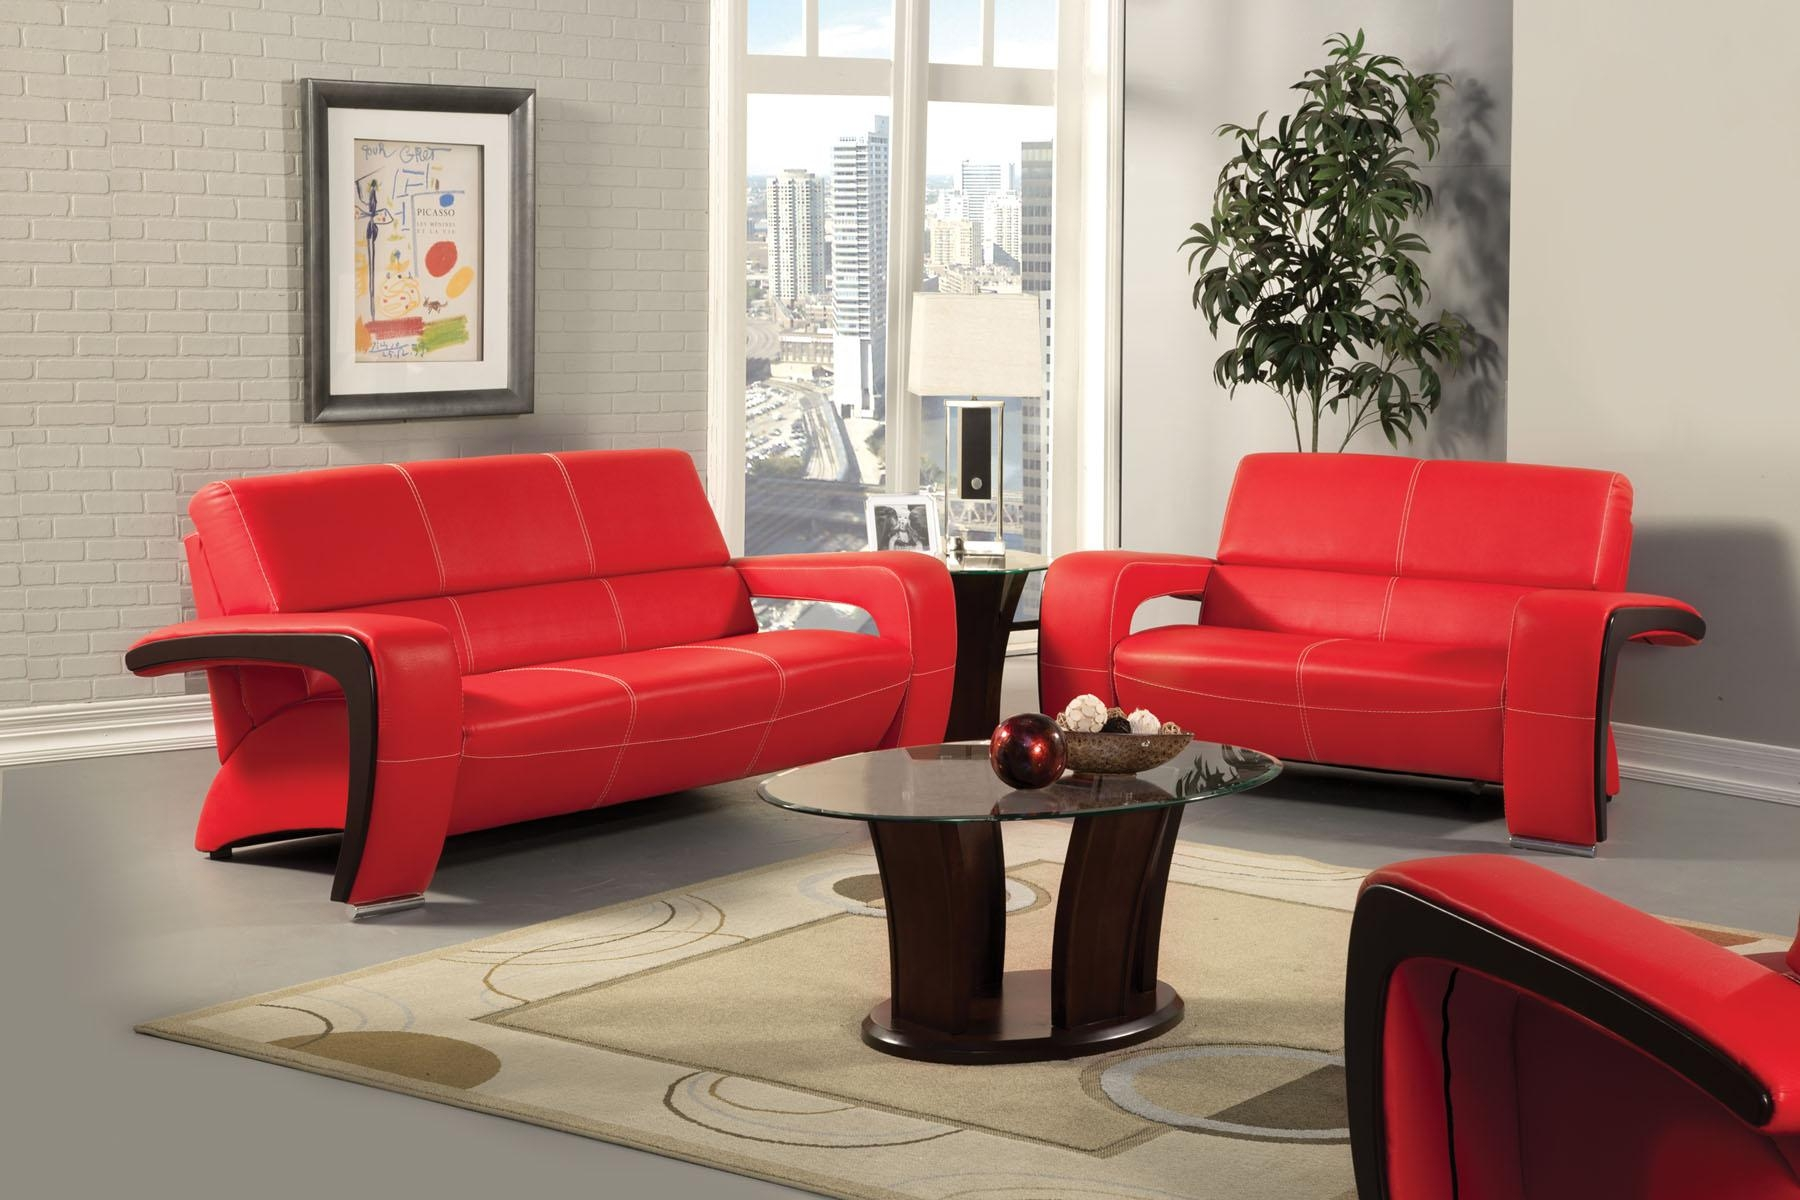 Uniques And Chairs Thesofa Unusual Couch Covers Home Decor Living Pertaining To Unusual Sofas (Image 17 of 20)